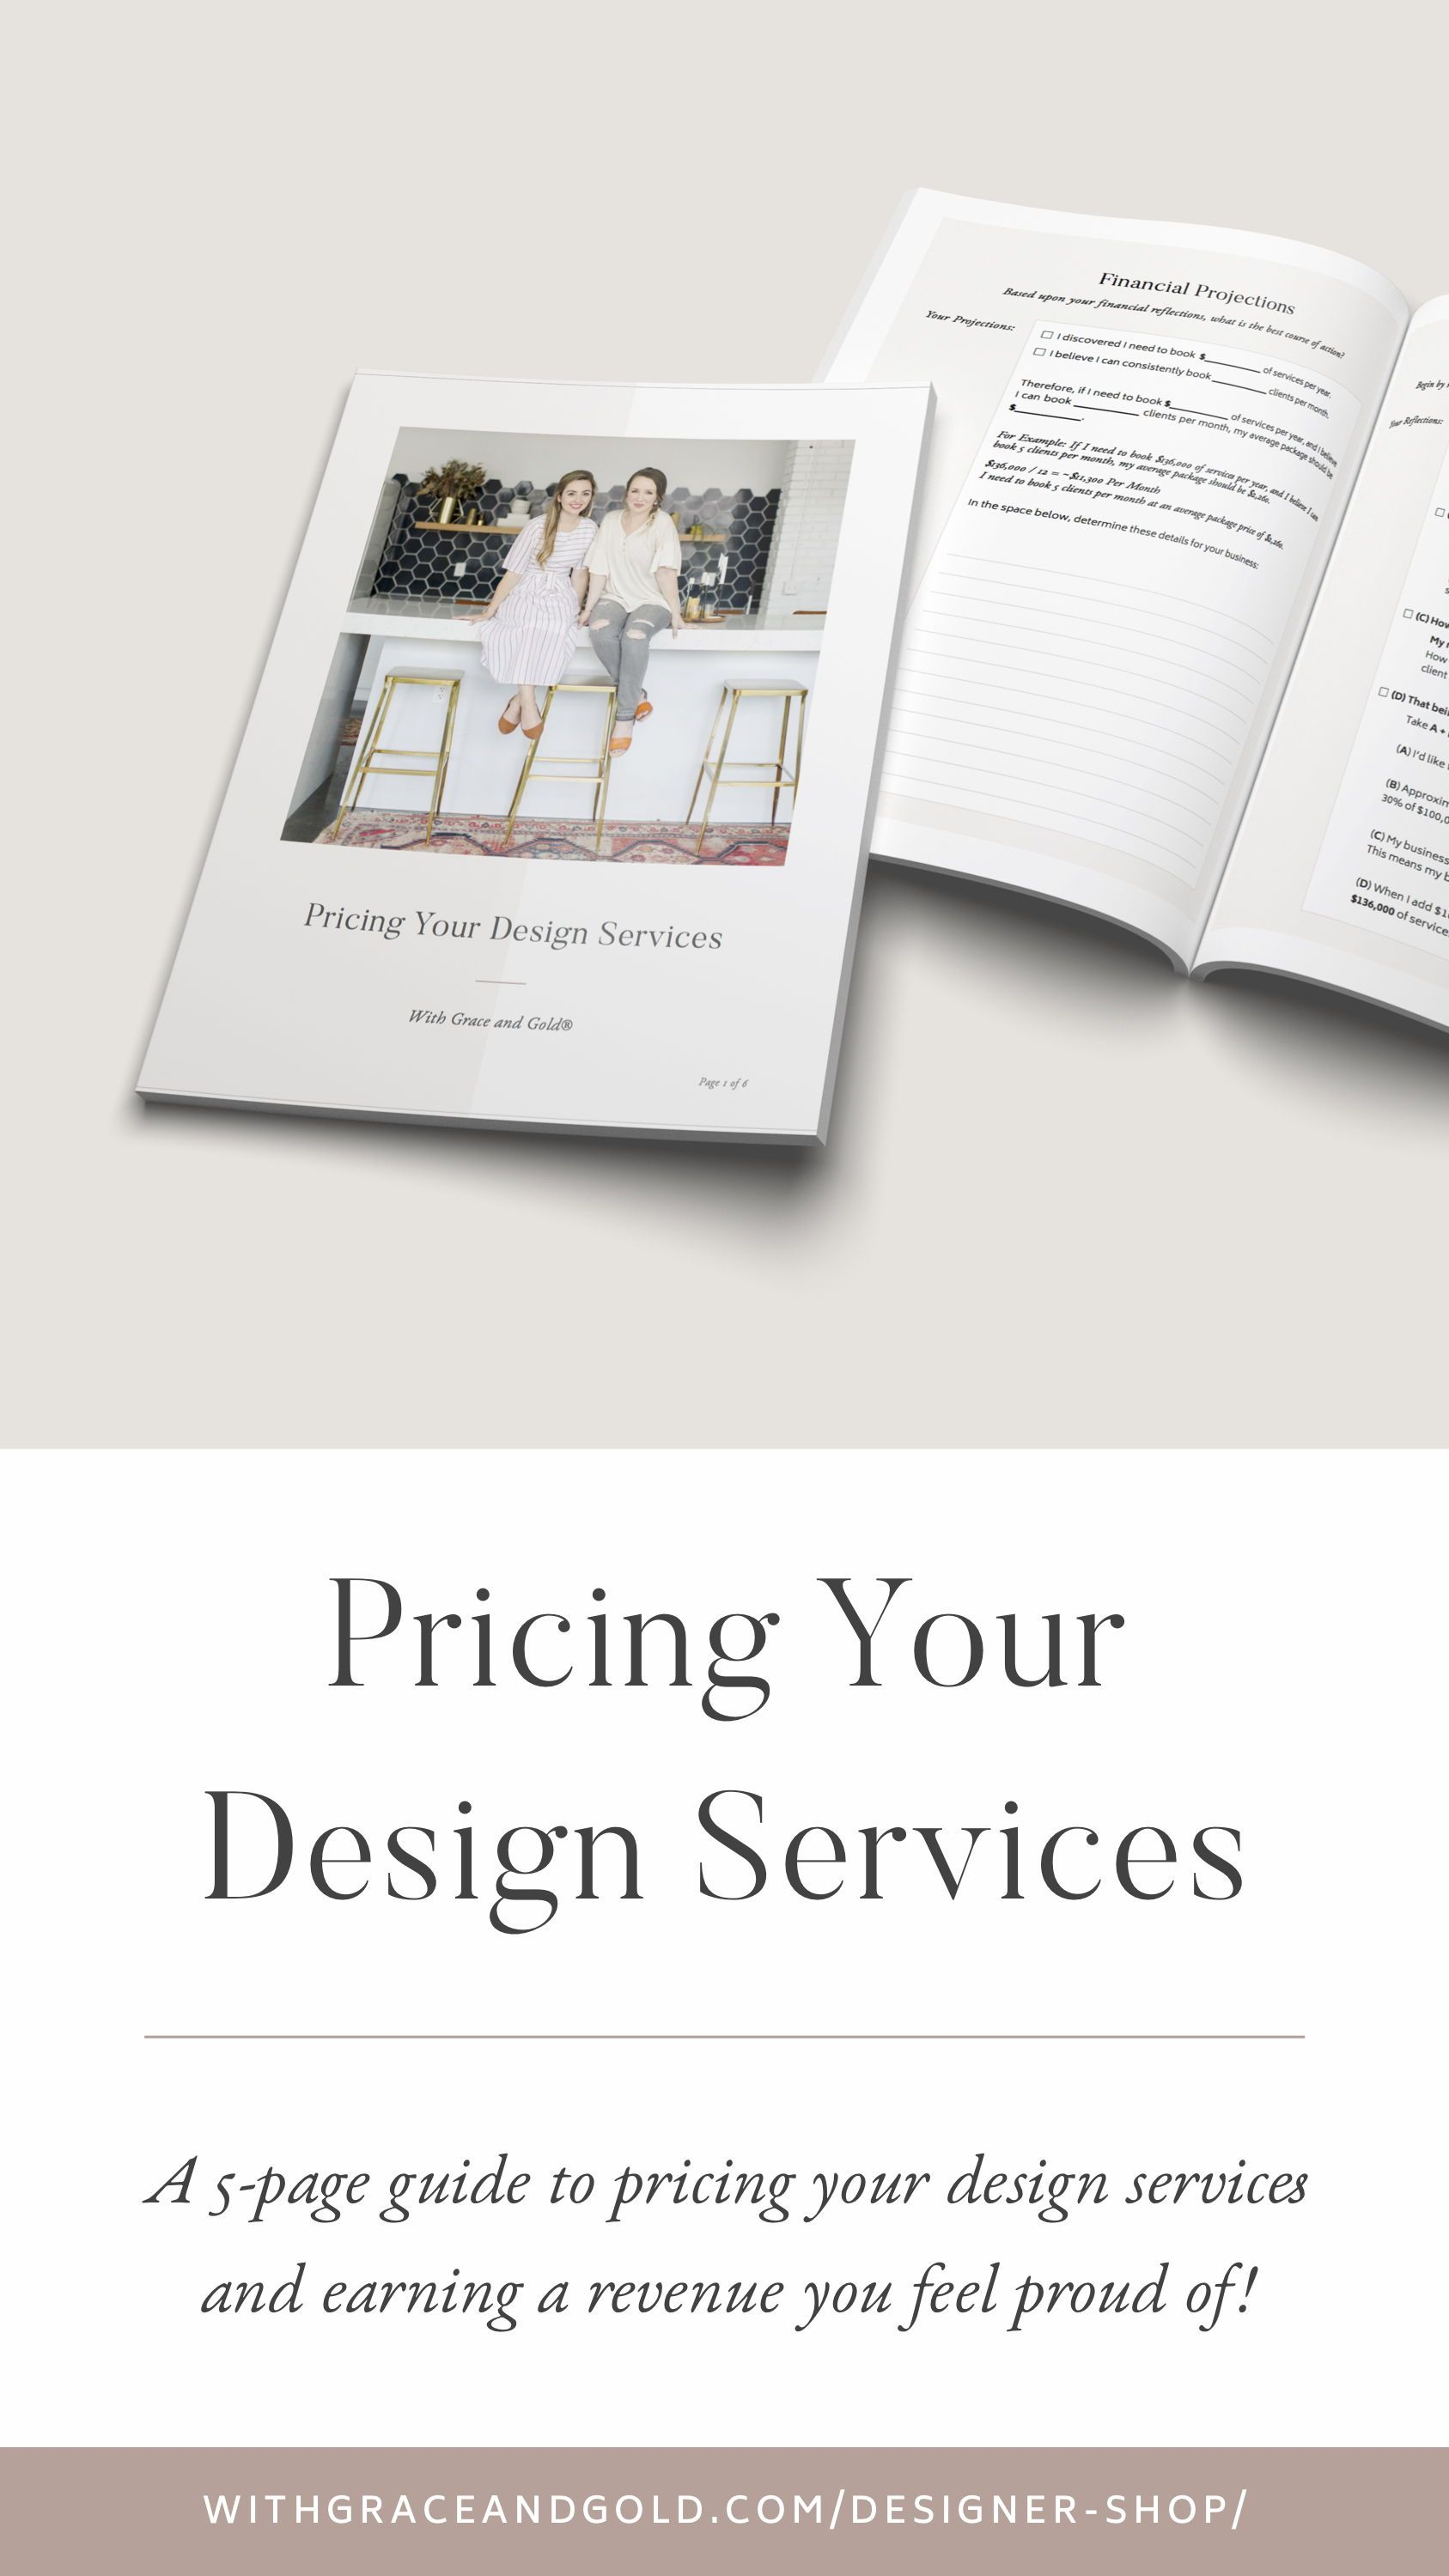 Pricing Your Design Services For Graphic And Web Designers By With Grace And Gold Graphic De Graphic Design Business Web Design Pricing Graphic Design Tips